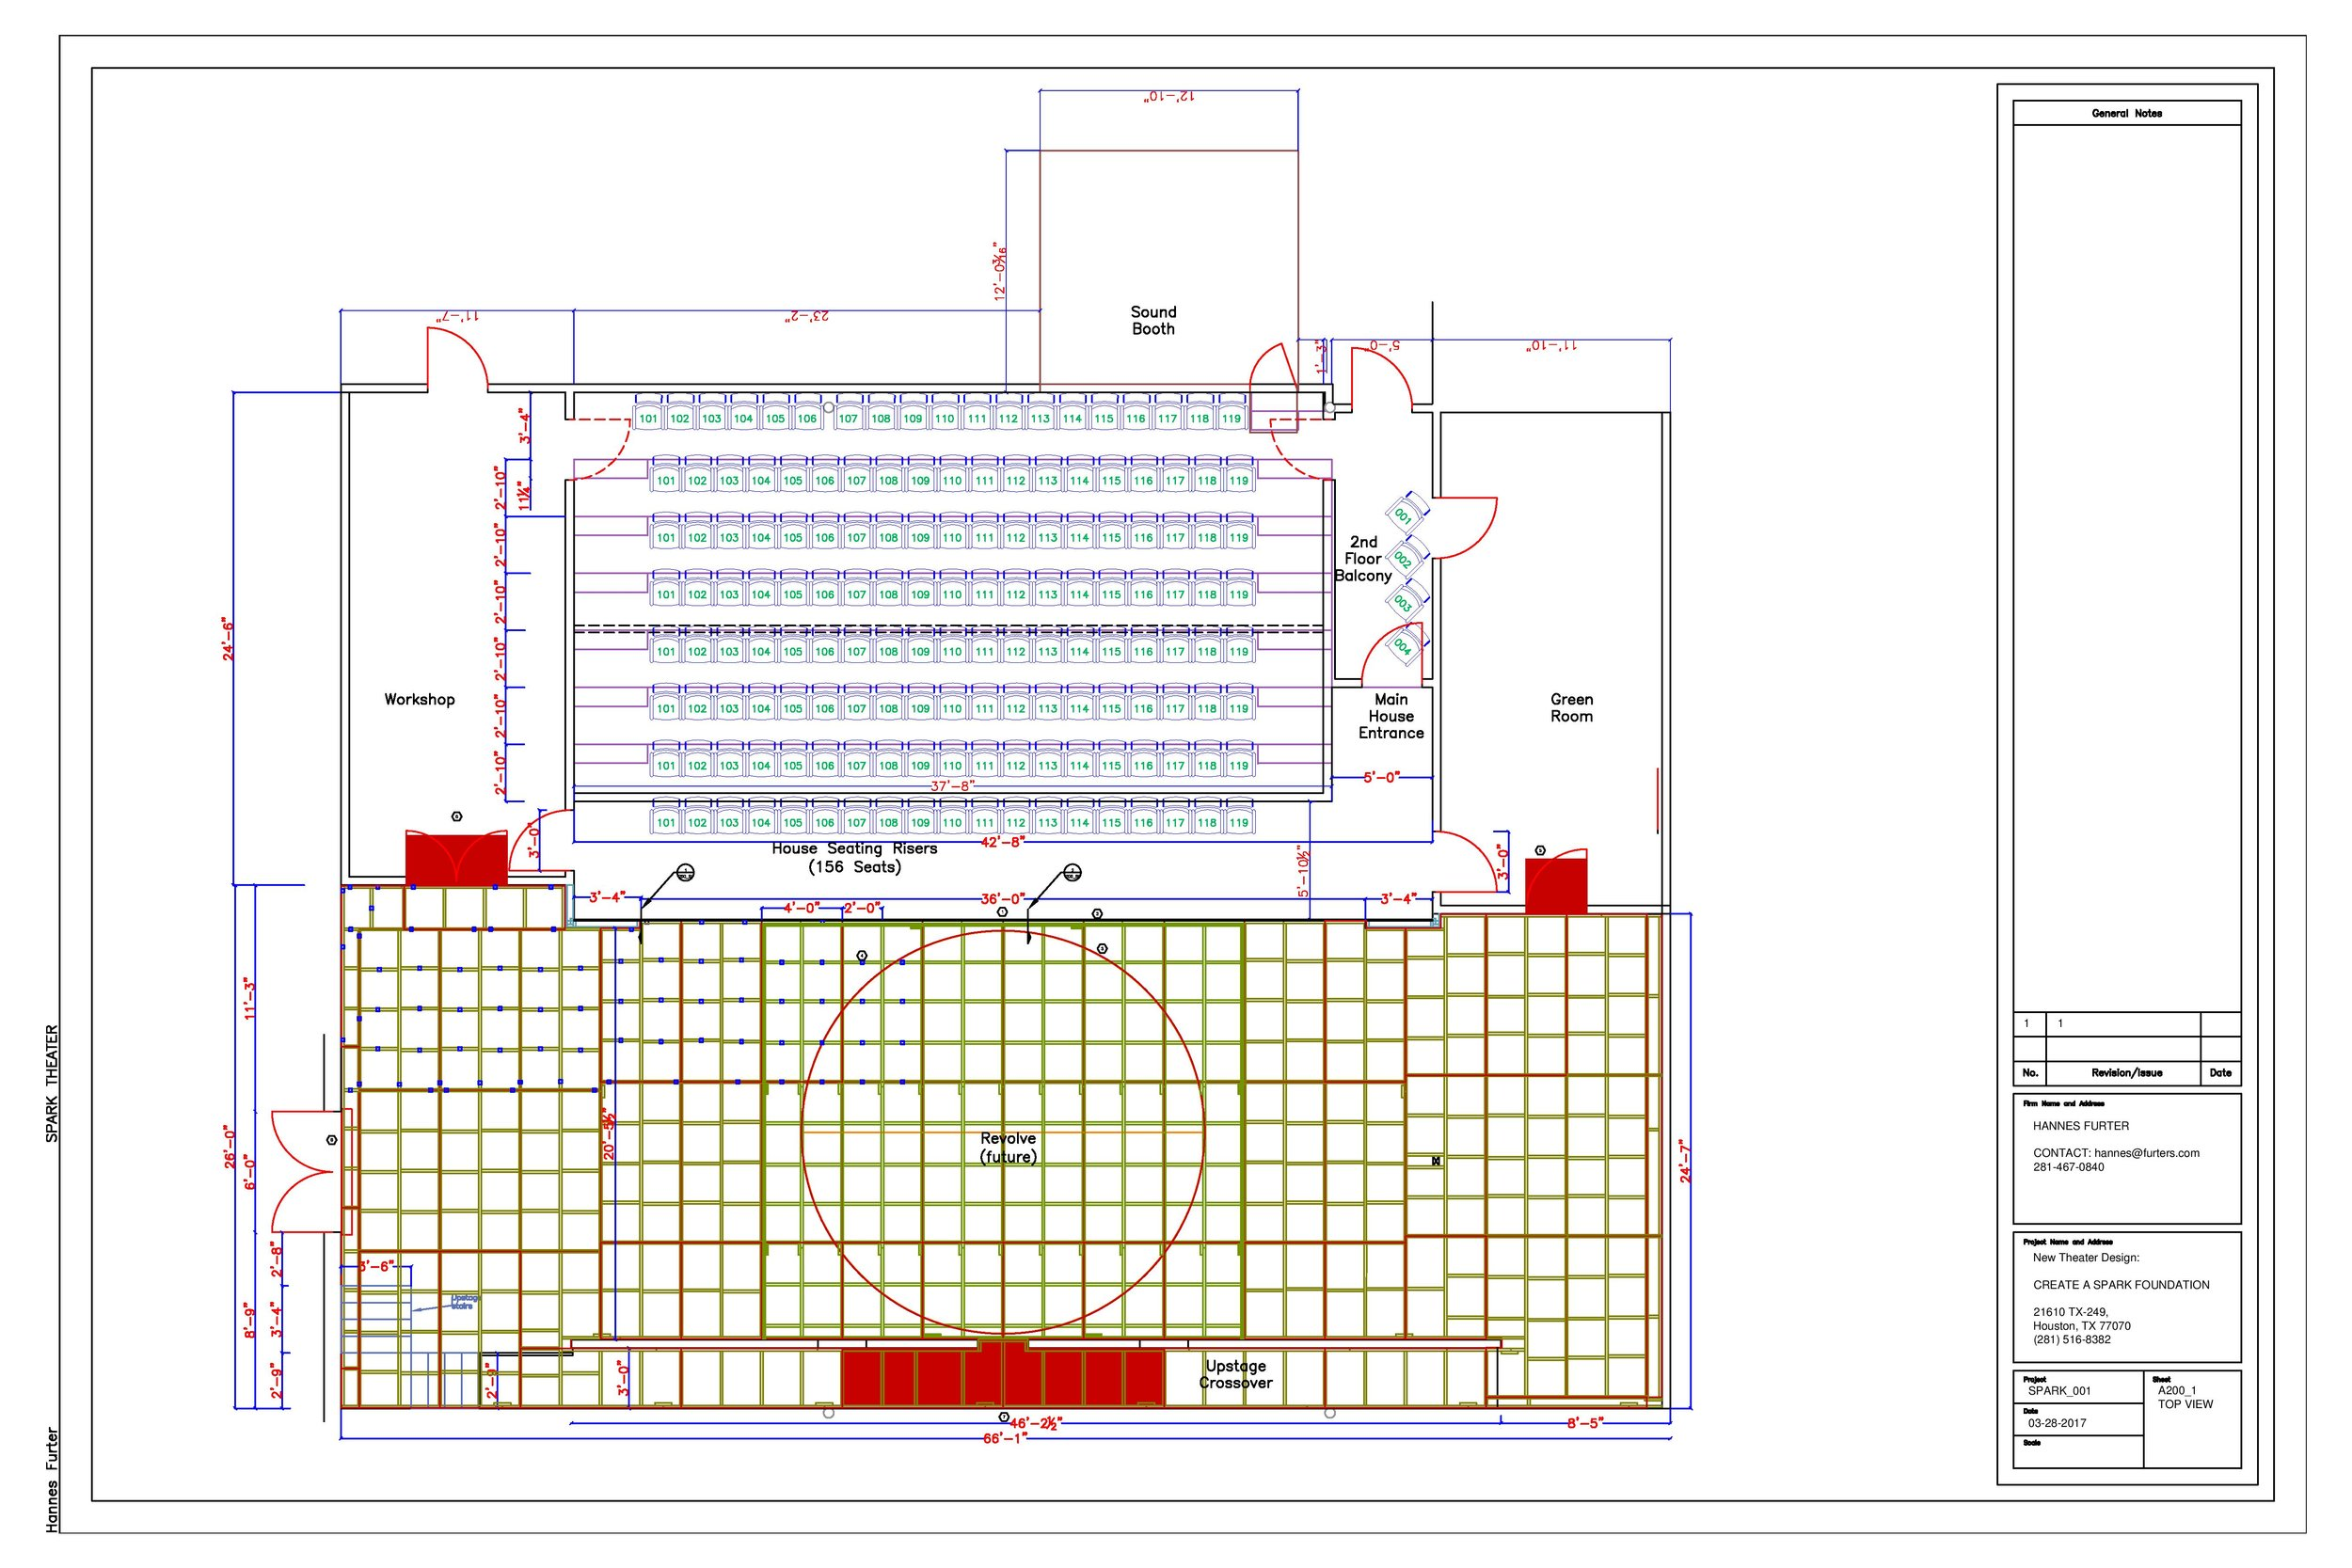 5Spark Theatre_Basic Layout_04-10-17-TOP VIEW-page-0051.jpg